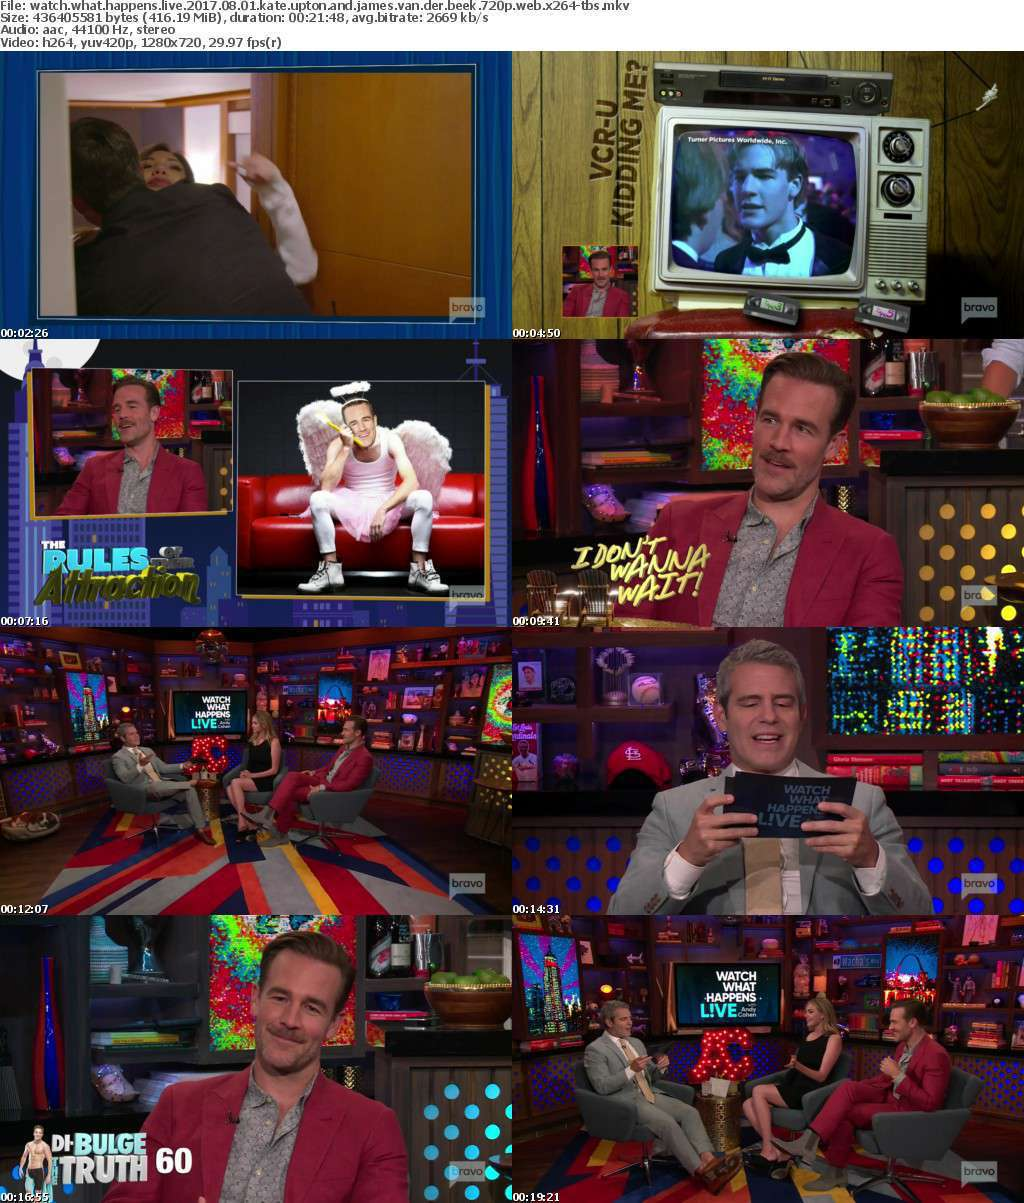 Watch What Happens Live 2017 08 01 Kate Upton and James Van Der Beek 720p WEB x264-TBS